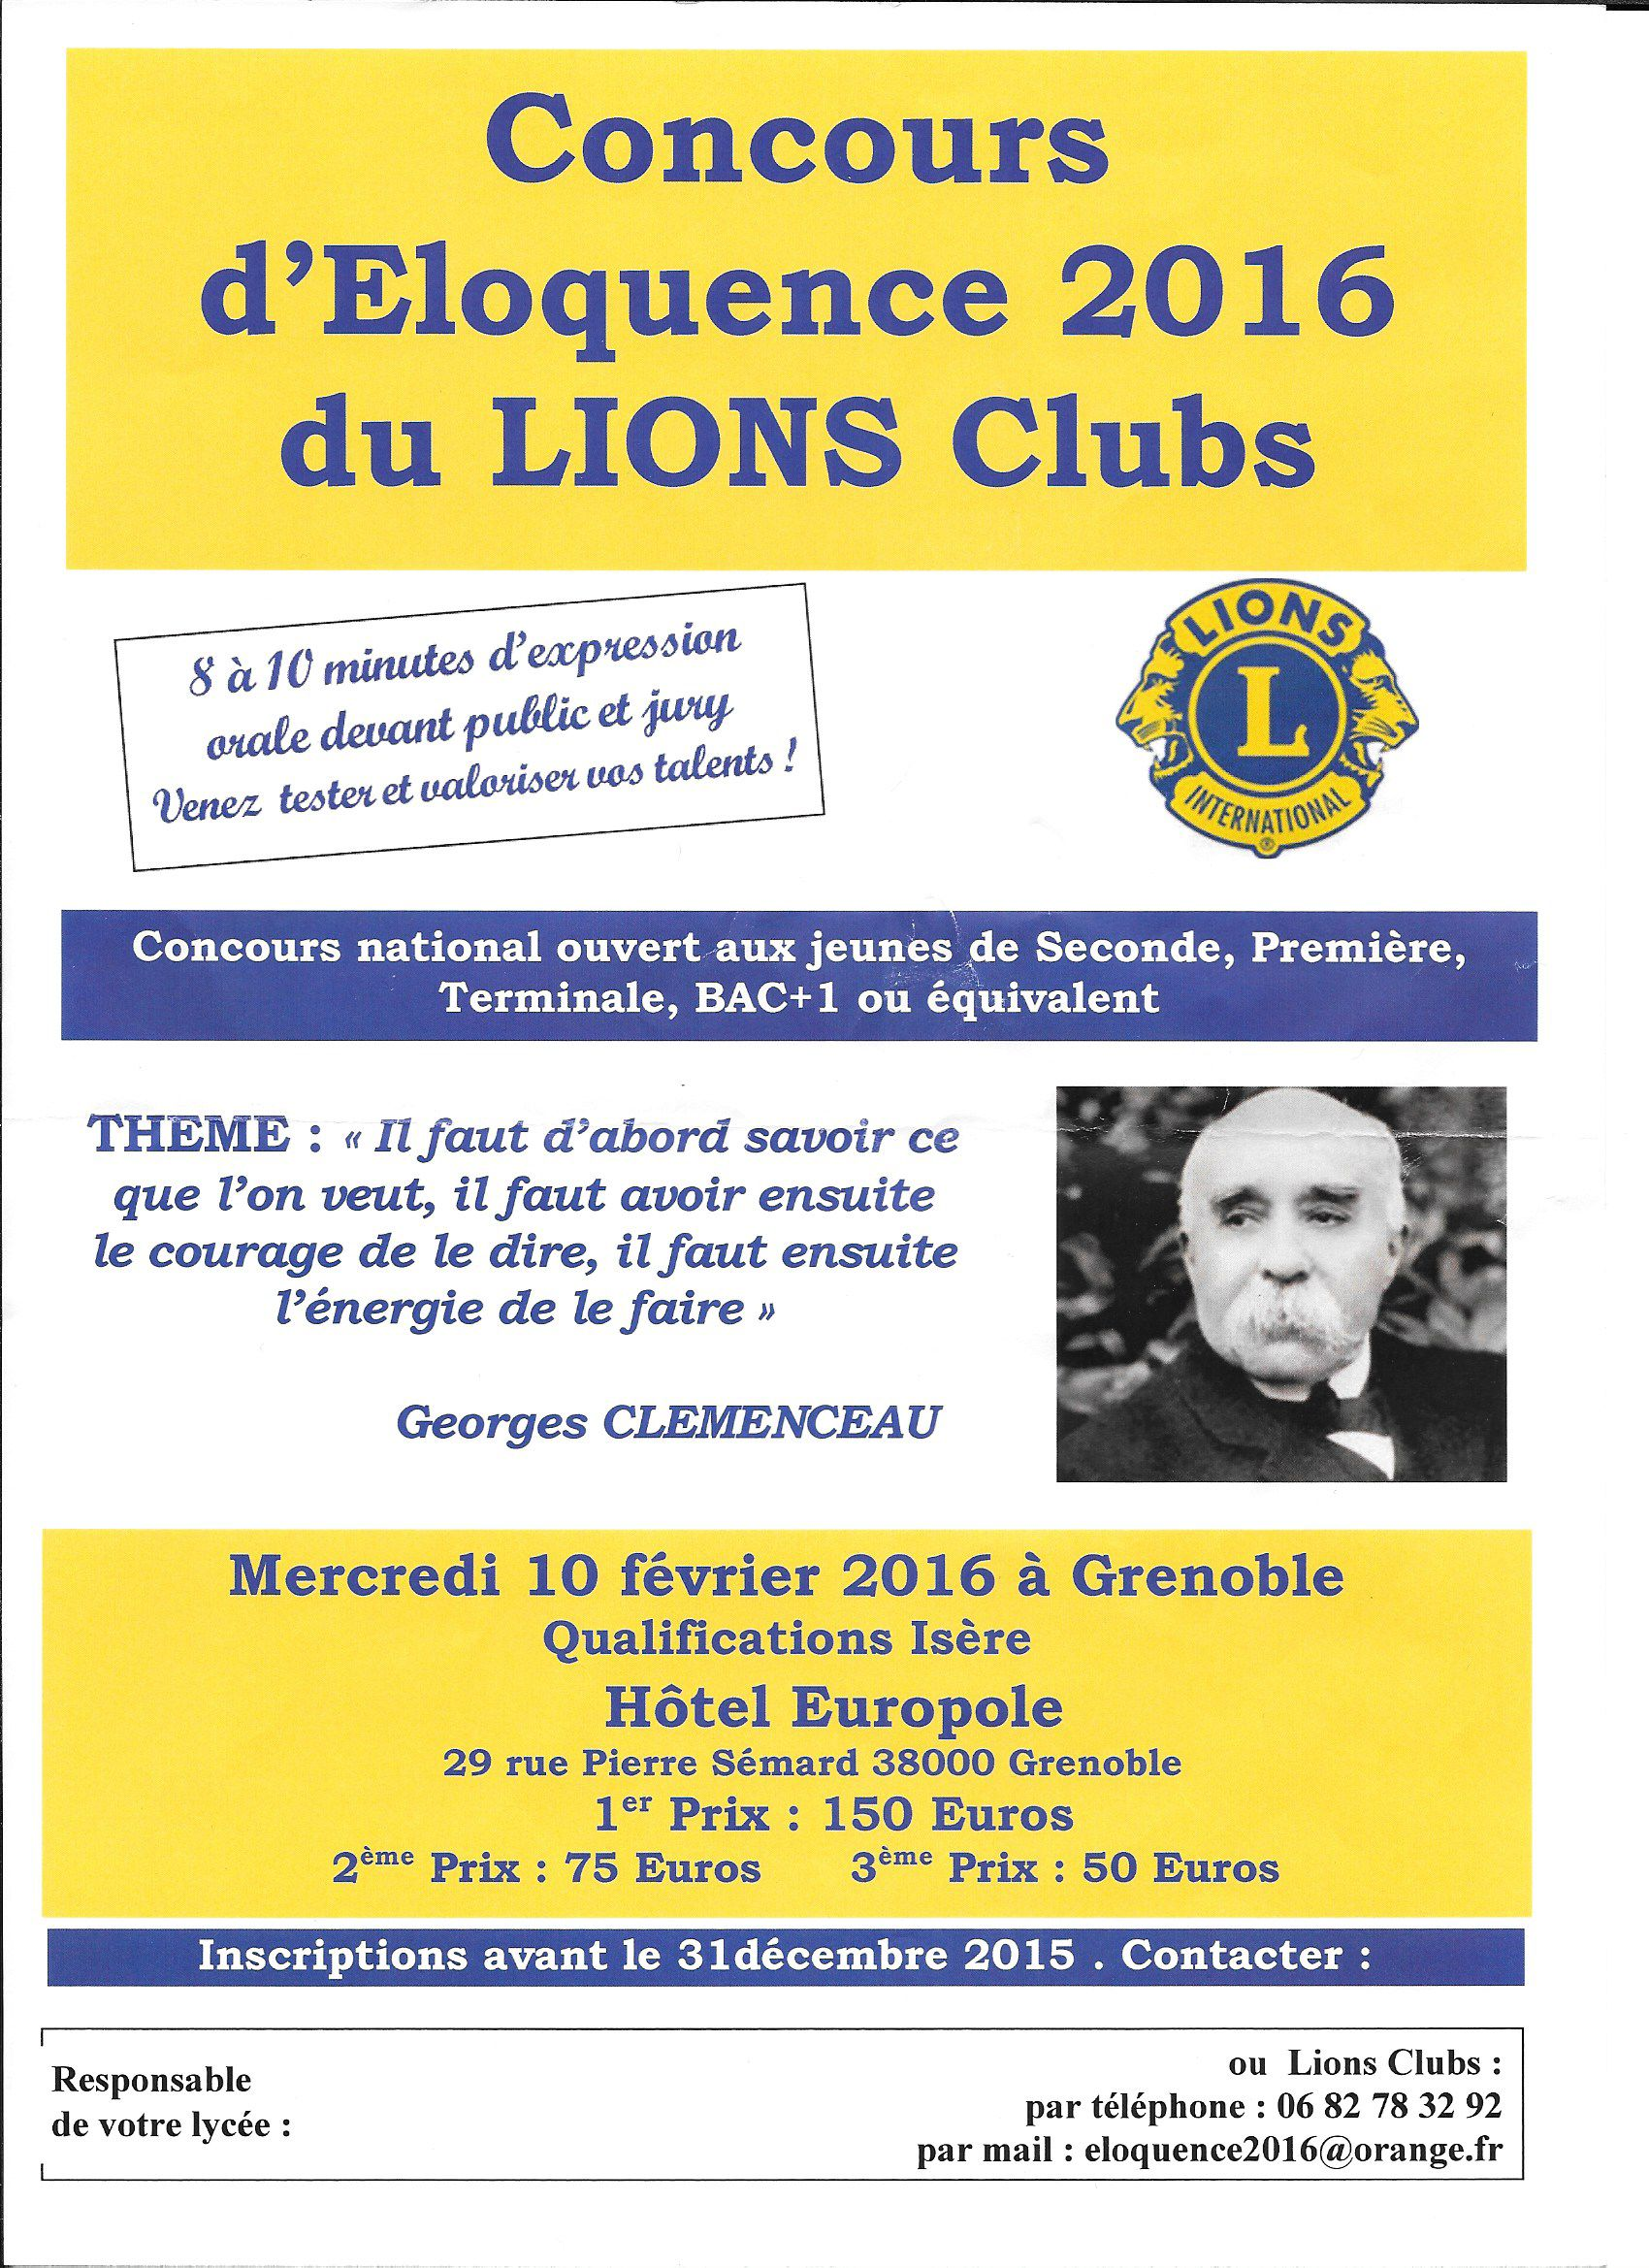 https://static.blog4ever.com/2010/02/389644/2016-01-21-Lions---loquence-affiche.JPG